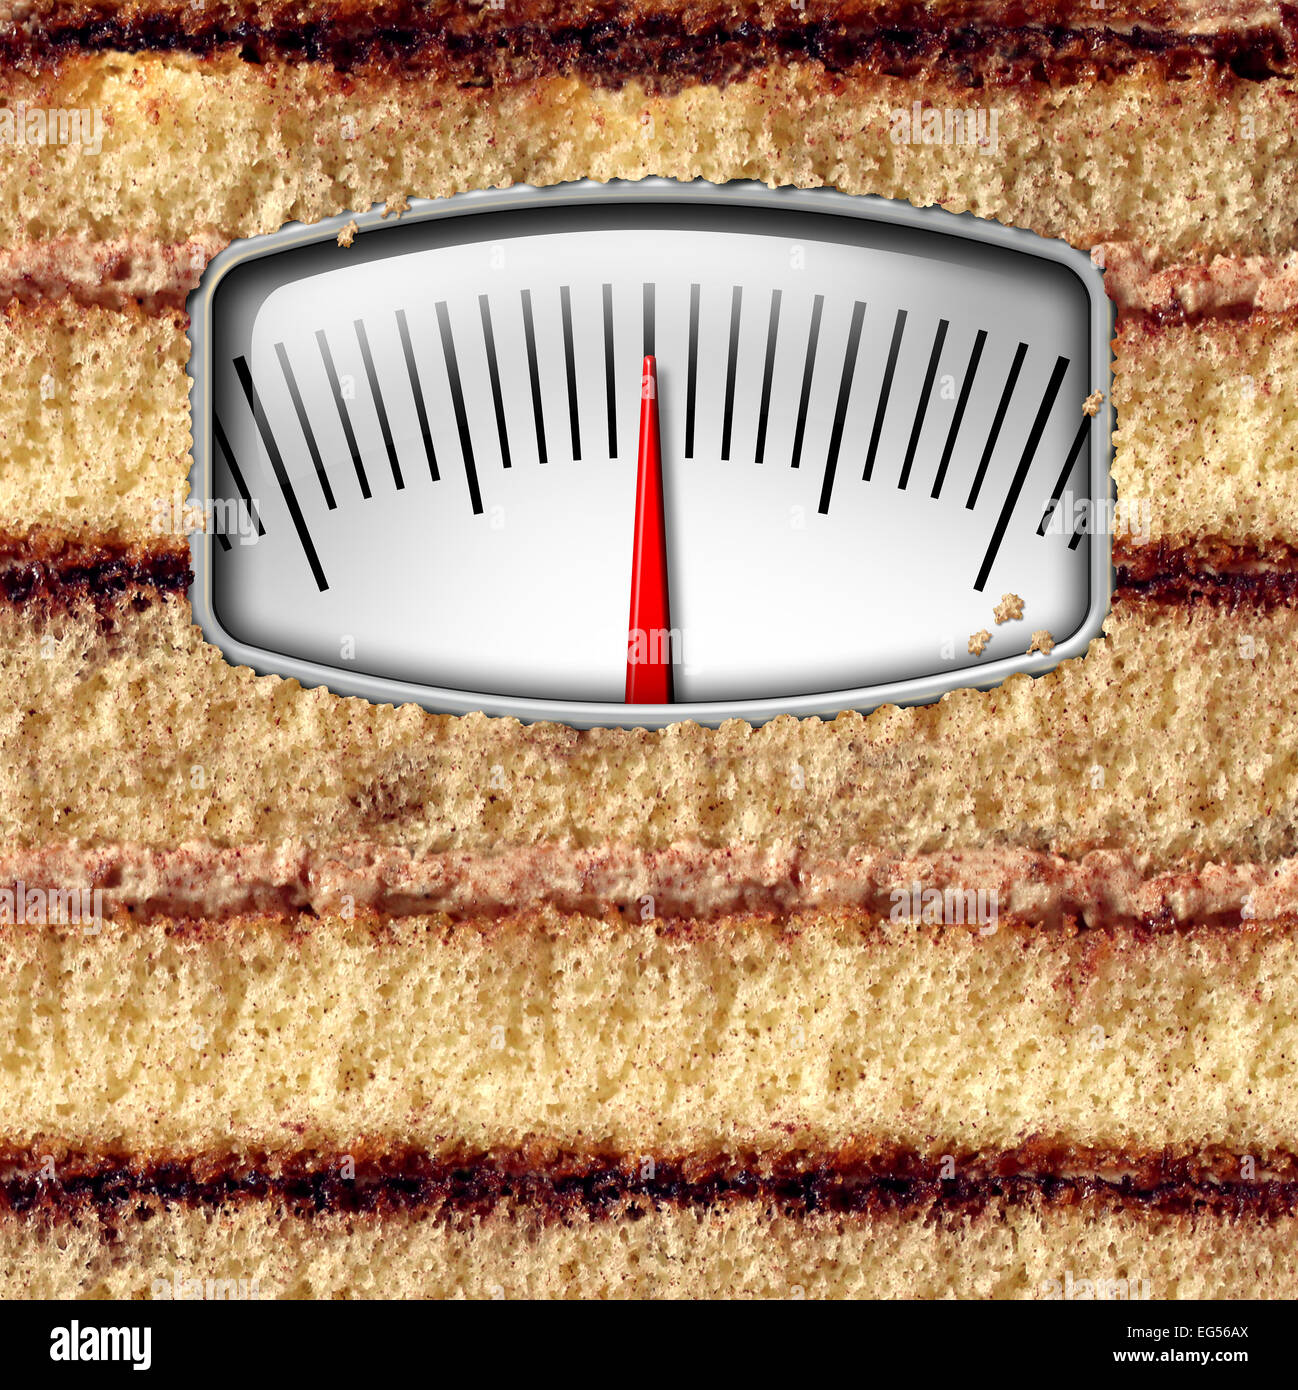 Diet weight scale concept and counting calories symbol as a cake with a kilogram or pound measurement equipment - Stock Image